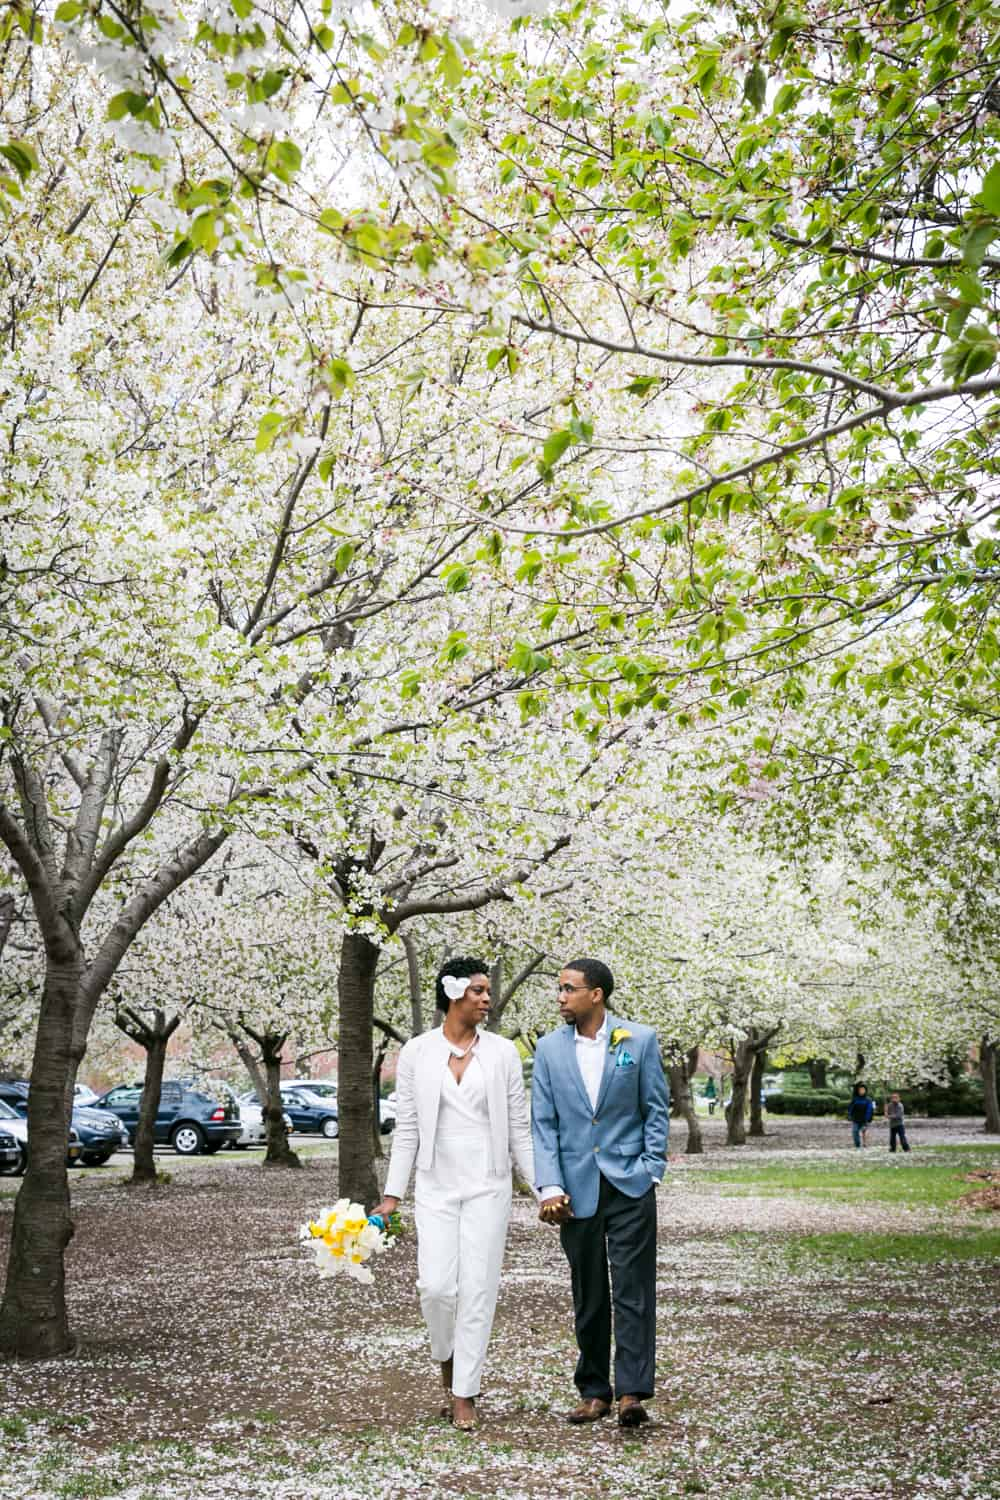 Couple walking under cherry blossom trees in Flushing Meadows Corona Park for an article ranking the best places to see cherry blossoms in NYC